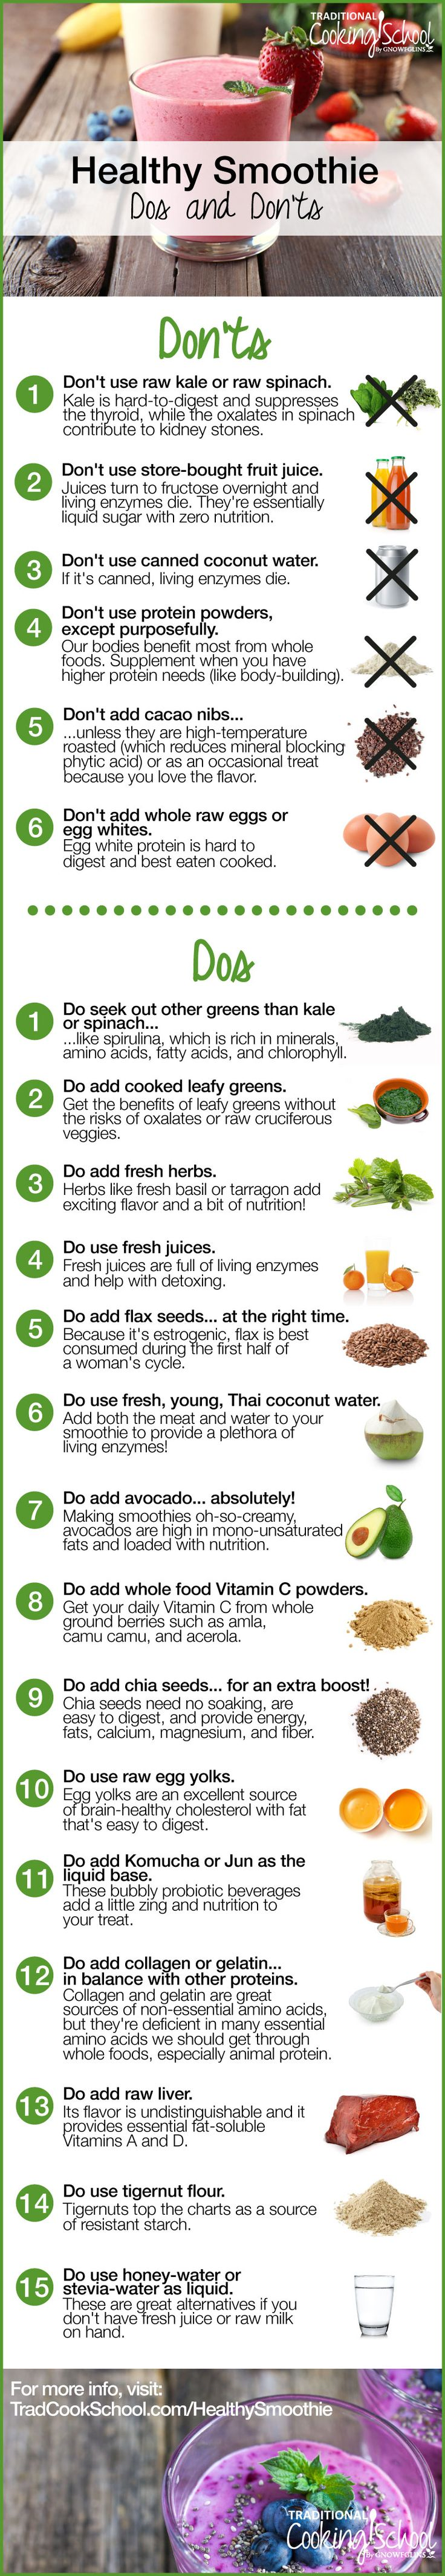 The Dos and Don'ts Of A Healthy Smoothie | Smoothies used to seem so easy! Then the green smoothie was introduced. Then coconut water and collagen. Yet these superfoods may not be all that they're cracked up to be. So what makes a smoothie a truly healthy snack? Here's how to make a healthy smoothie -- some easy DOs and DON'Ts to make your smoothies nourishing, beyond any doubt. | TraditionalCookingSchool.com